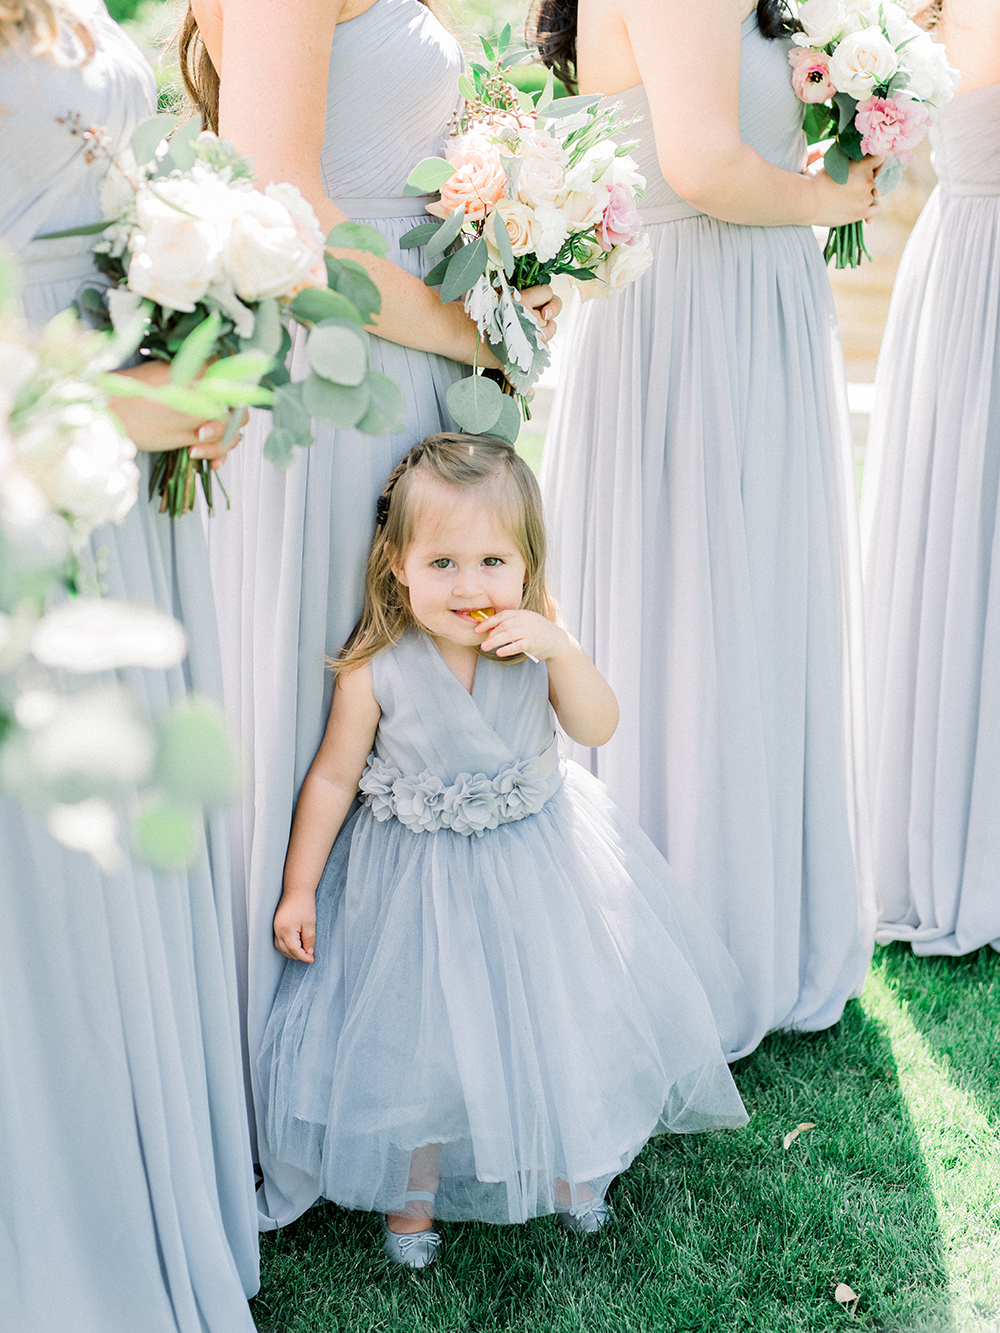 Romantic and Classic Greystone Mansion Wedding by Lucky Day Events Co. x Jordan Galindo Photography // Flower Girl in Grey Dress